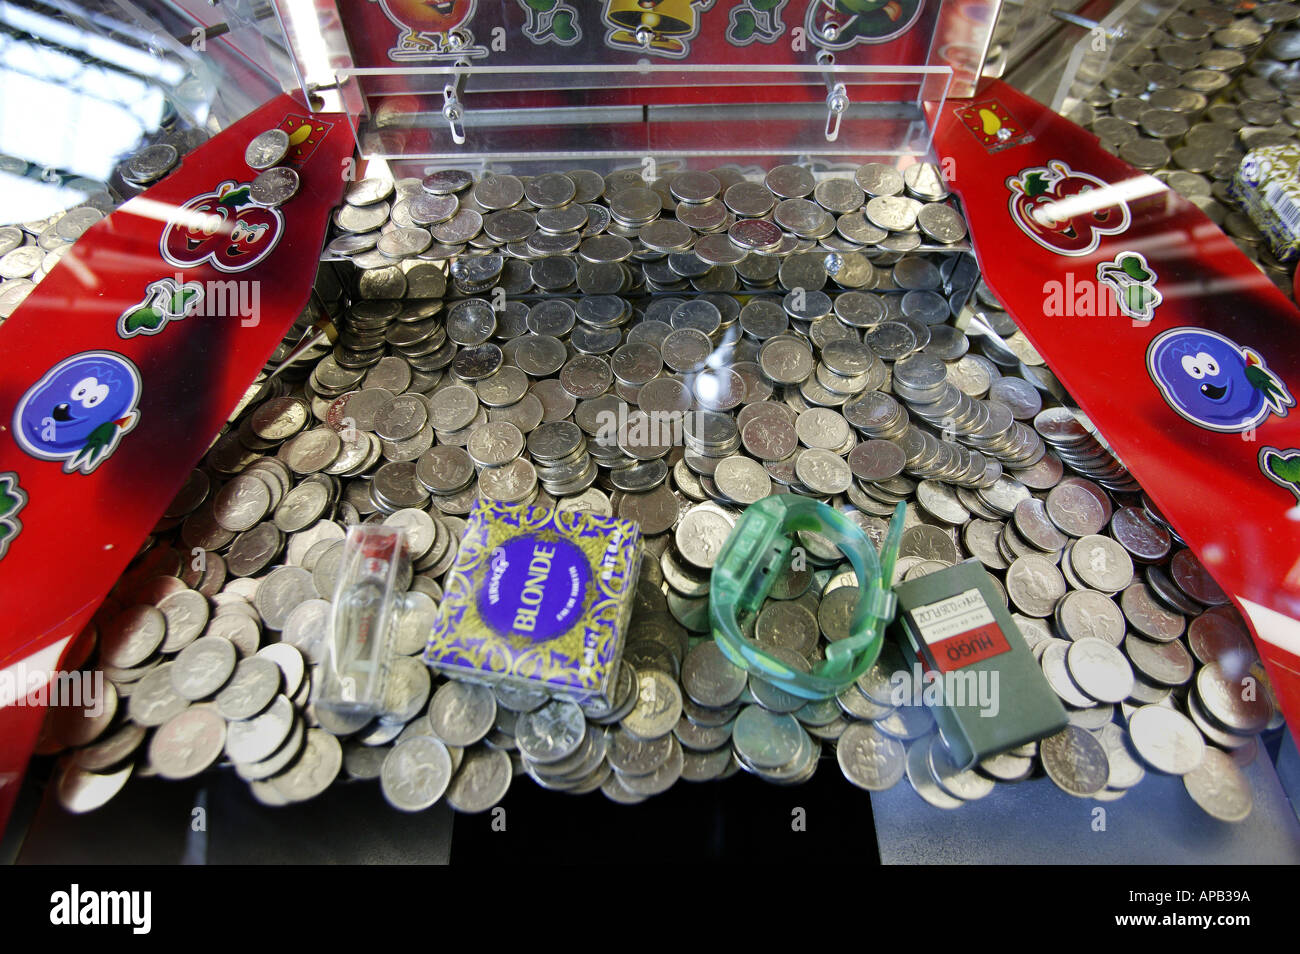 Gambling coin games charged with illegal gambling